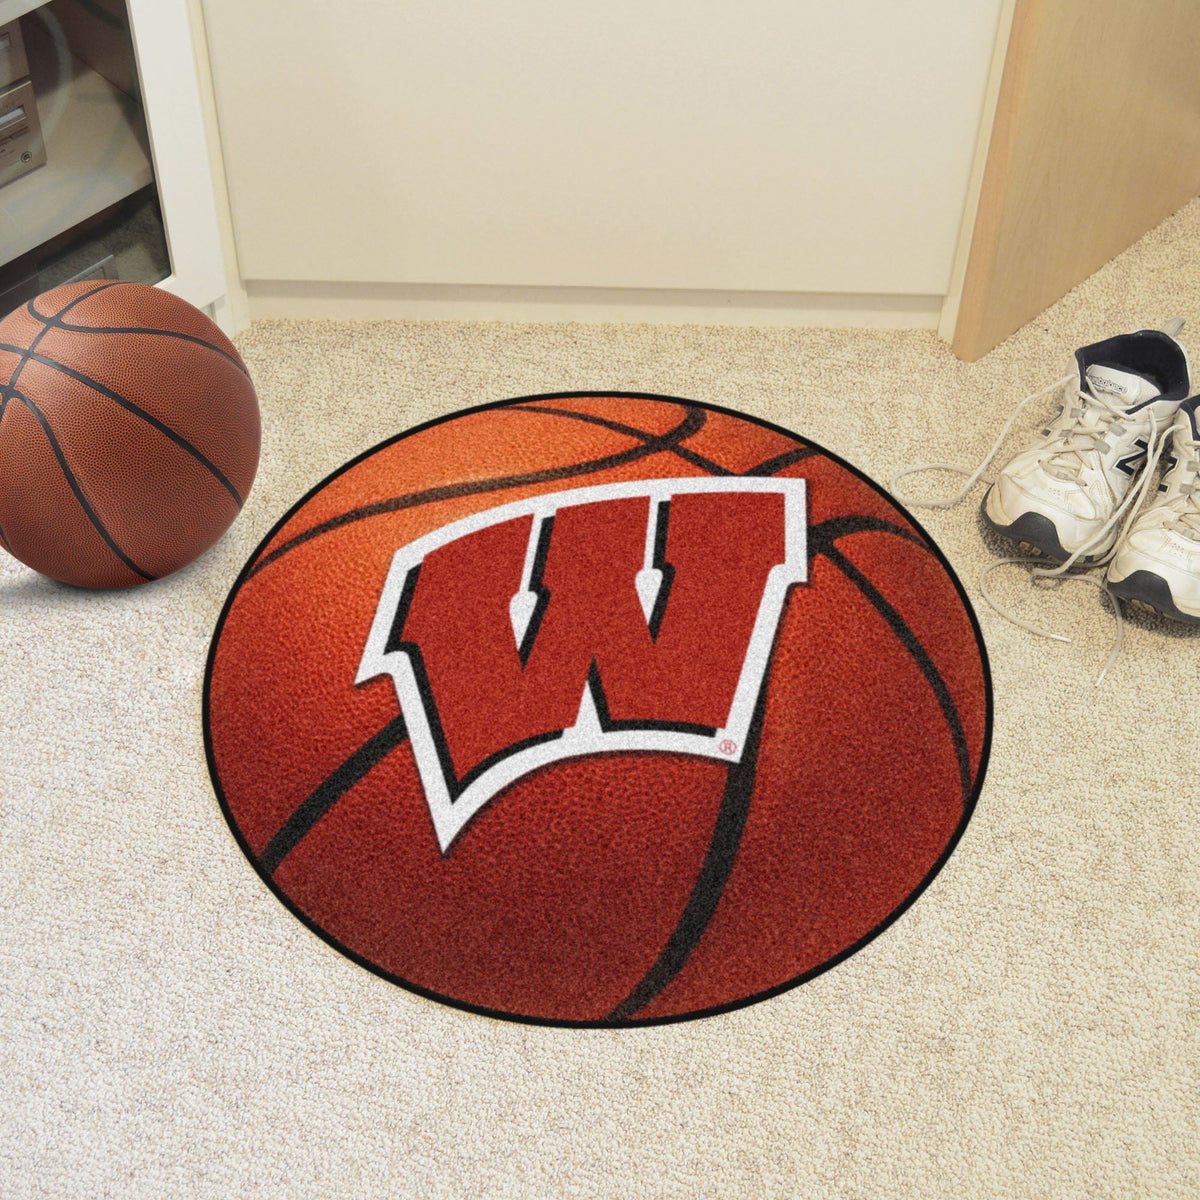 Collegiate - Basketball Mat: T - Z Collegiate Mats, Rectangular Mats, Basketball Mat, Collegiate, Home Fan Mats Wisconsin